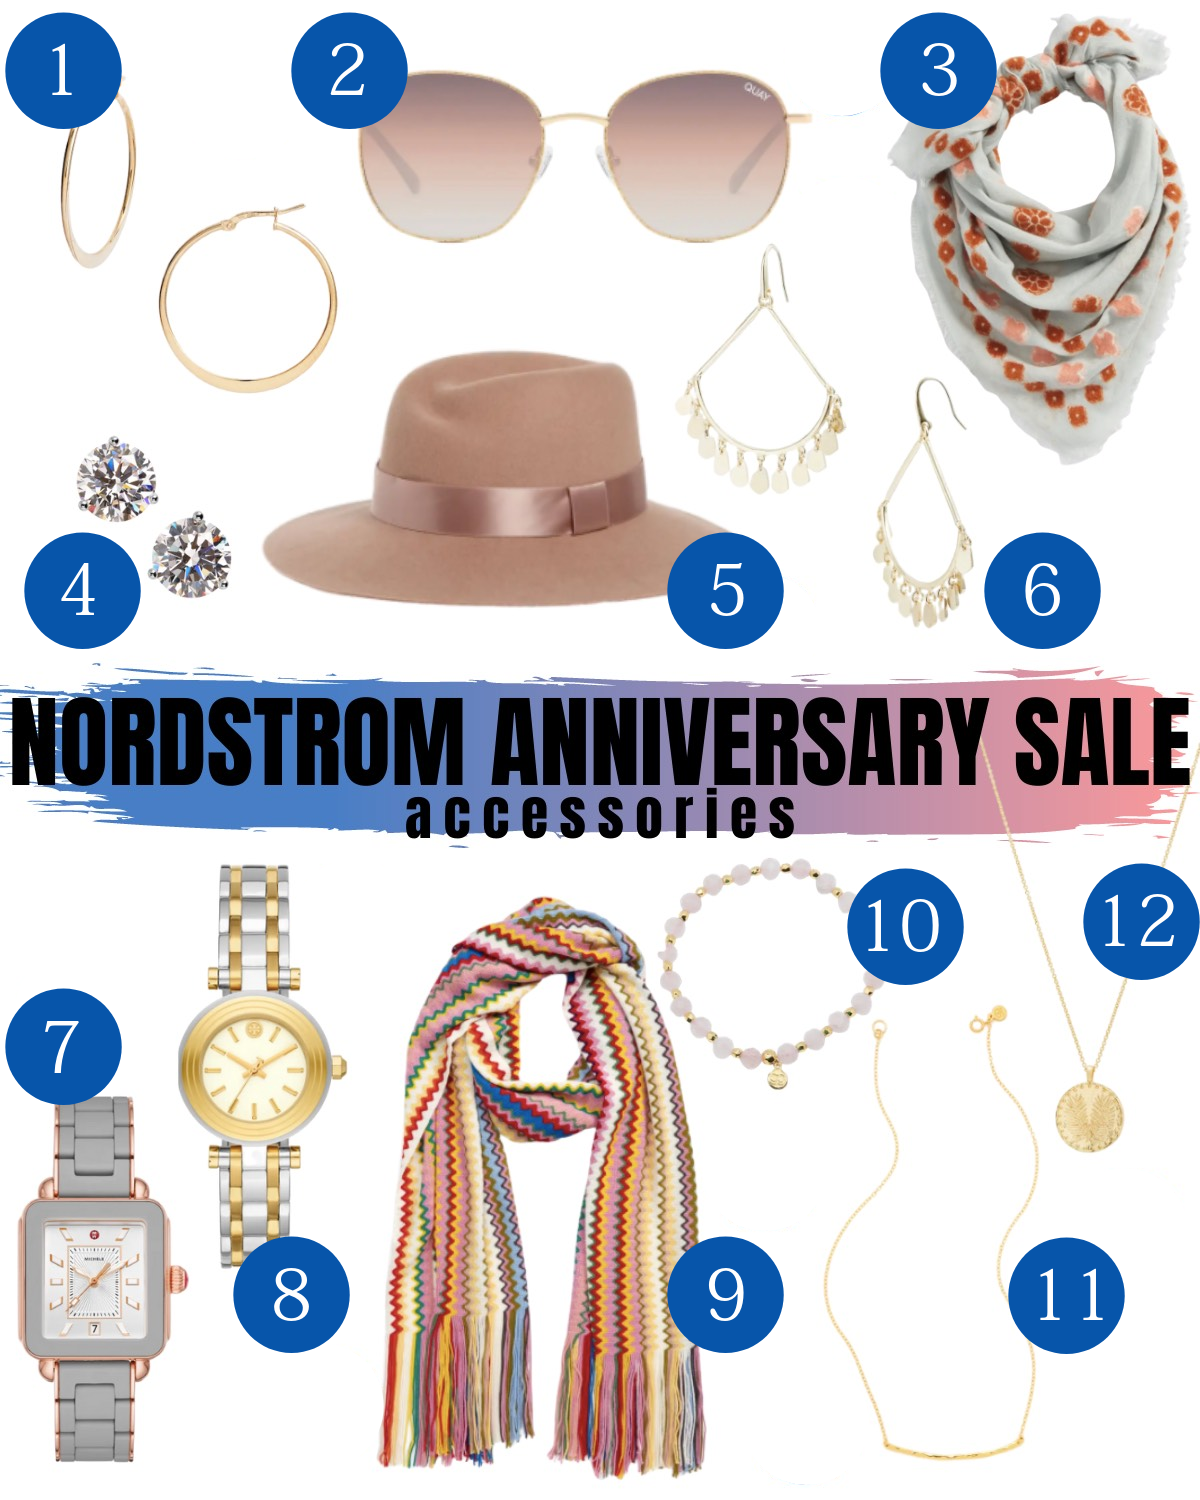 Nordstrom Anniversary Sale Accessories